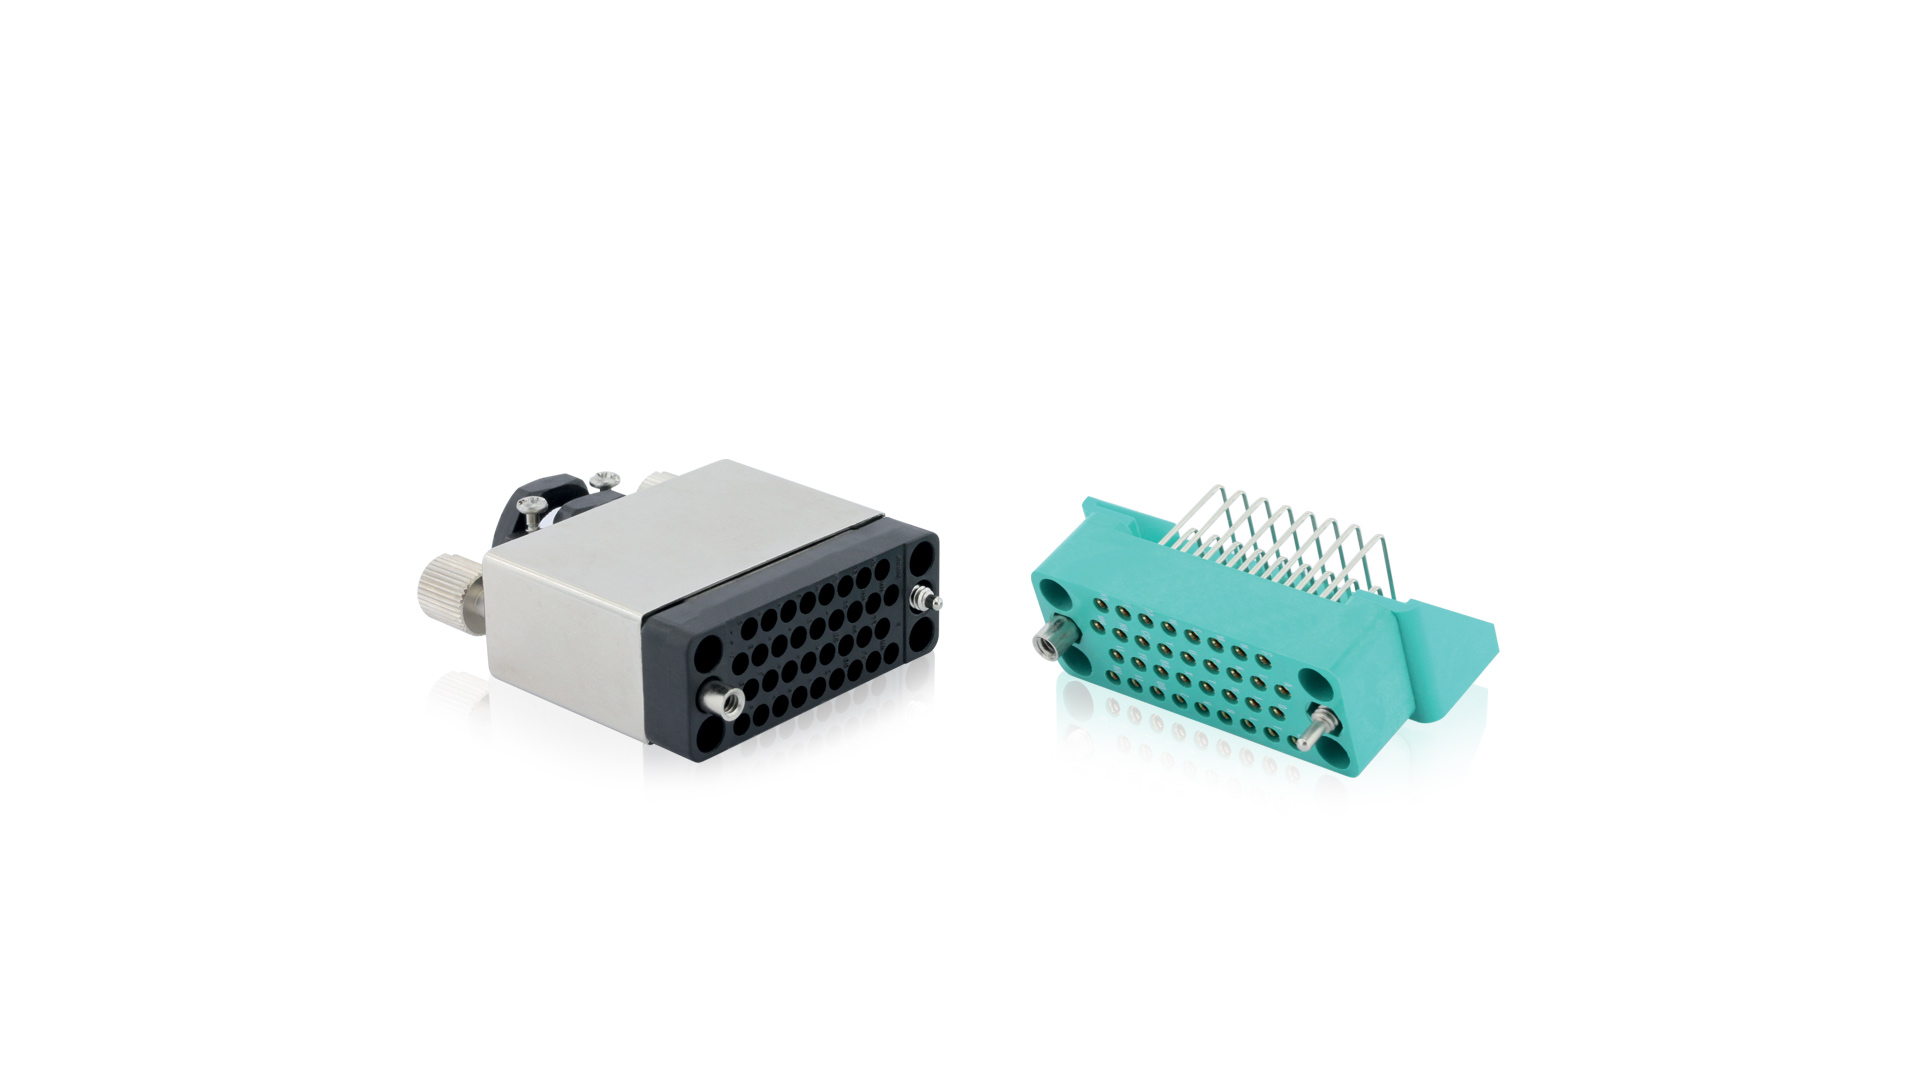 MSM series, MSM connector, MSM connectors